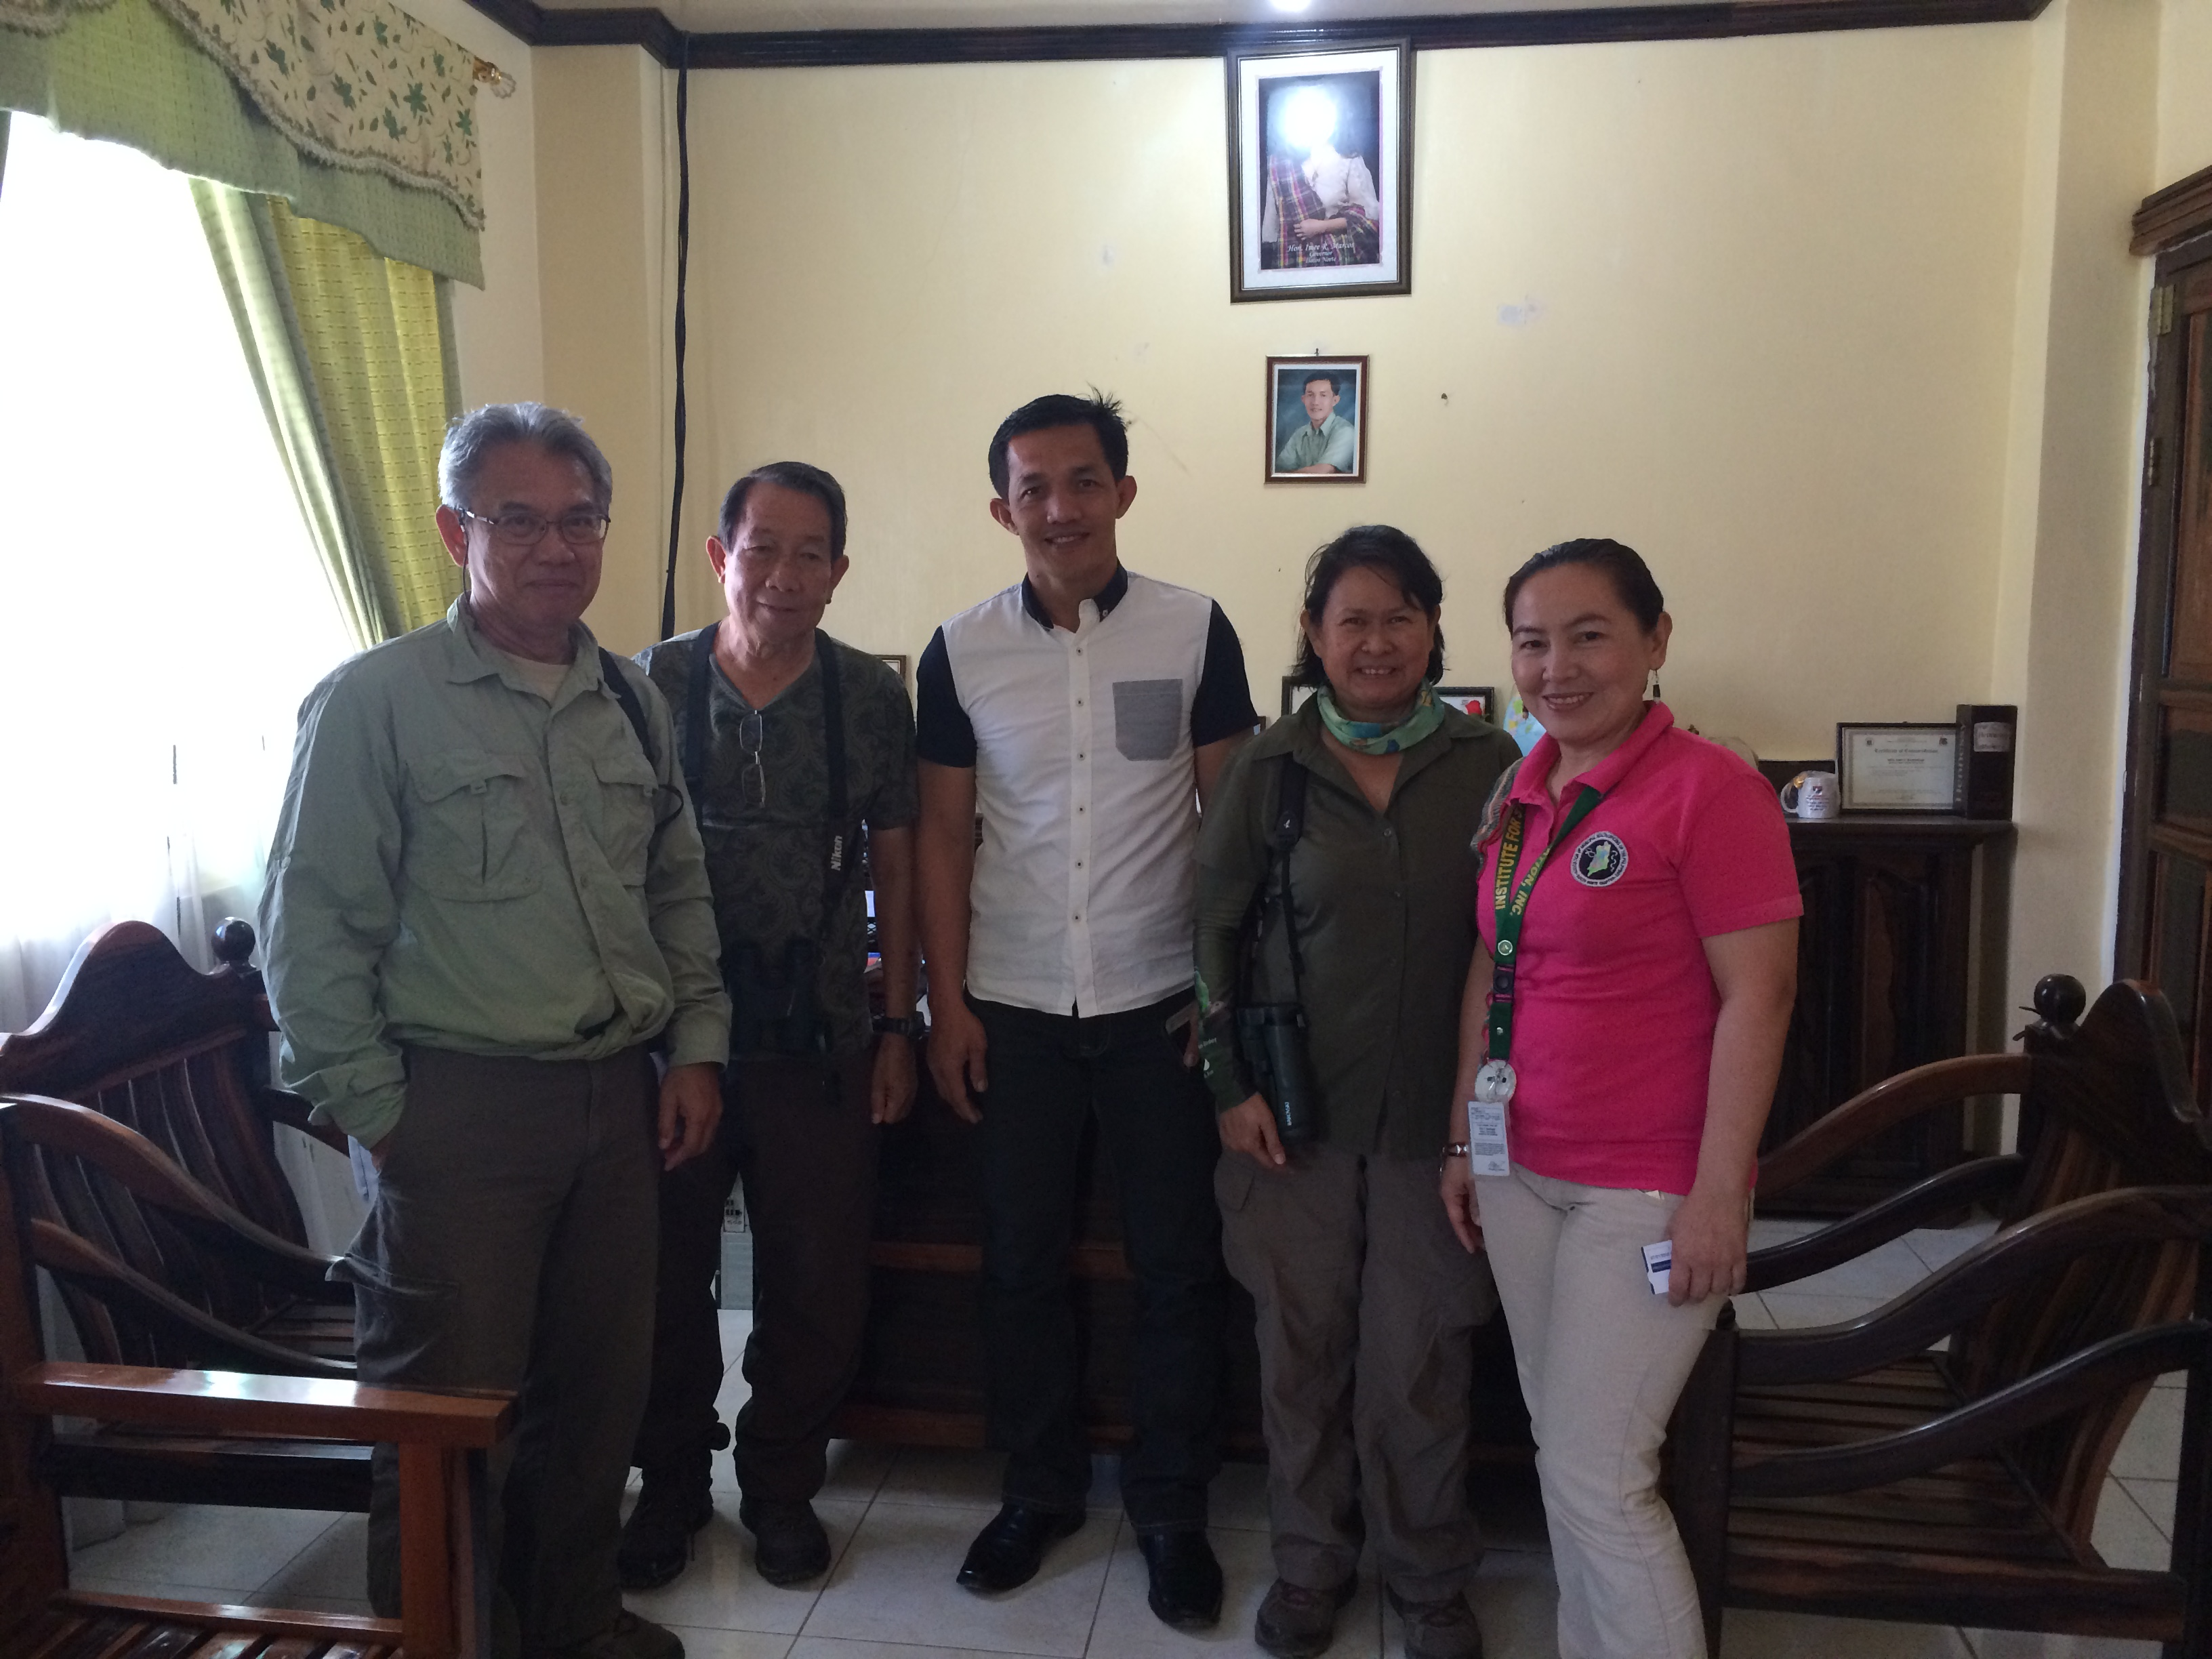 Alex, Jude, and Tere meeting with Mayor Eric Bawigan of Adams and his wife cum Adams Health Officer Dr. Bielma Waley-Bawigan to get cooperation regarding raptorwatch.